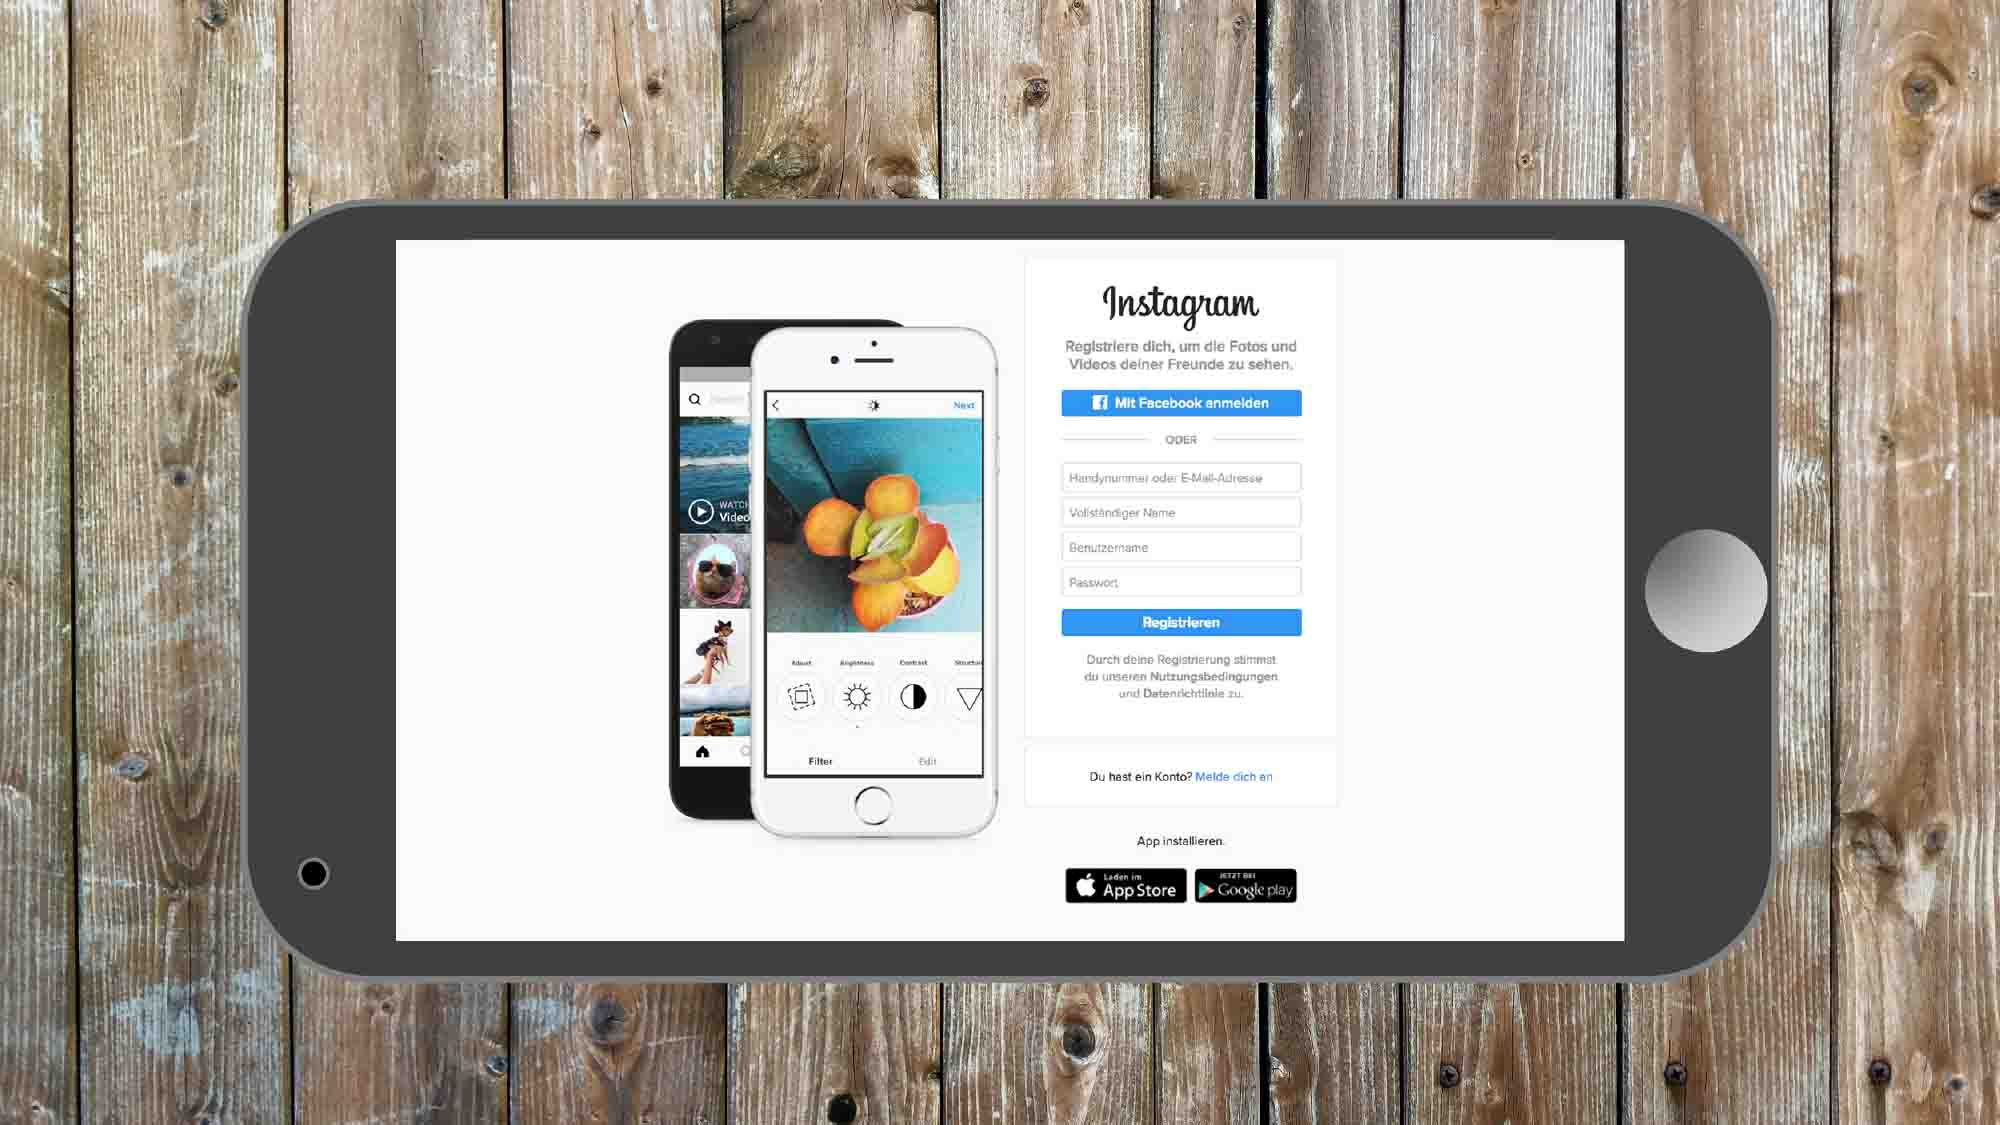 Test Out New Ideas To Post On Instagram - Dropship USA